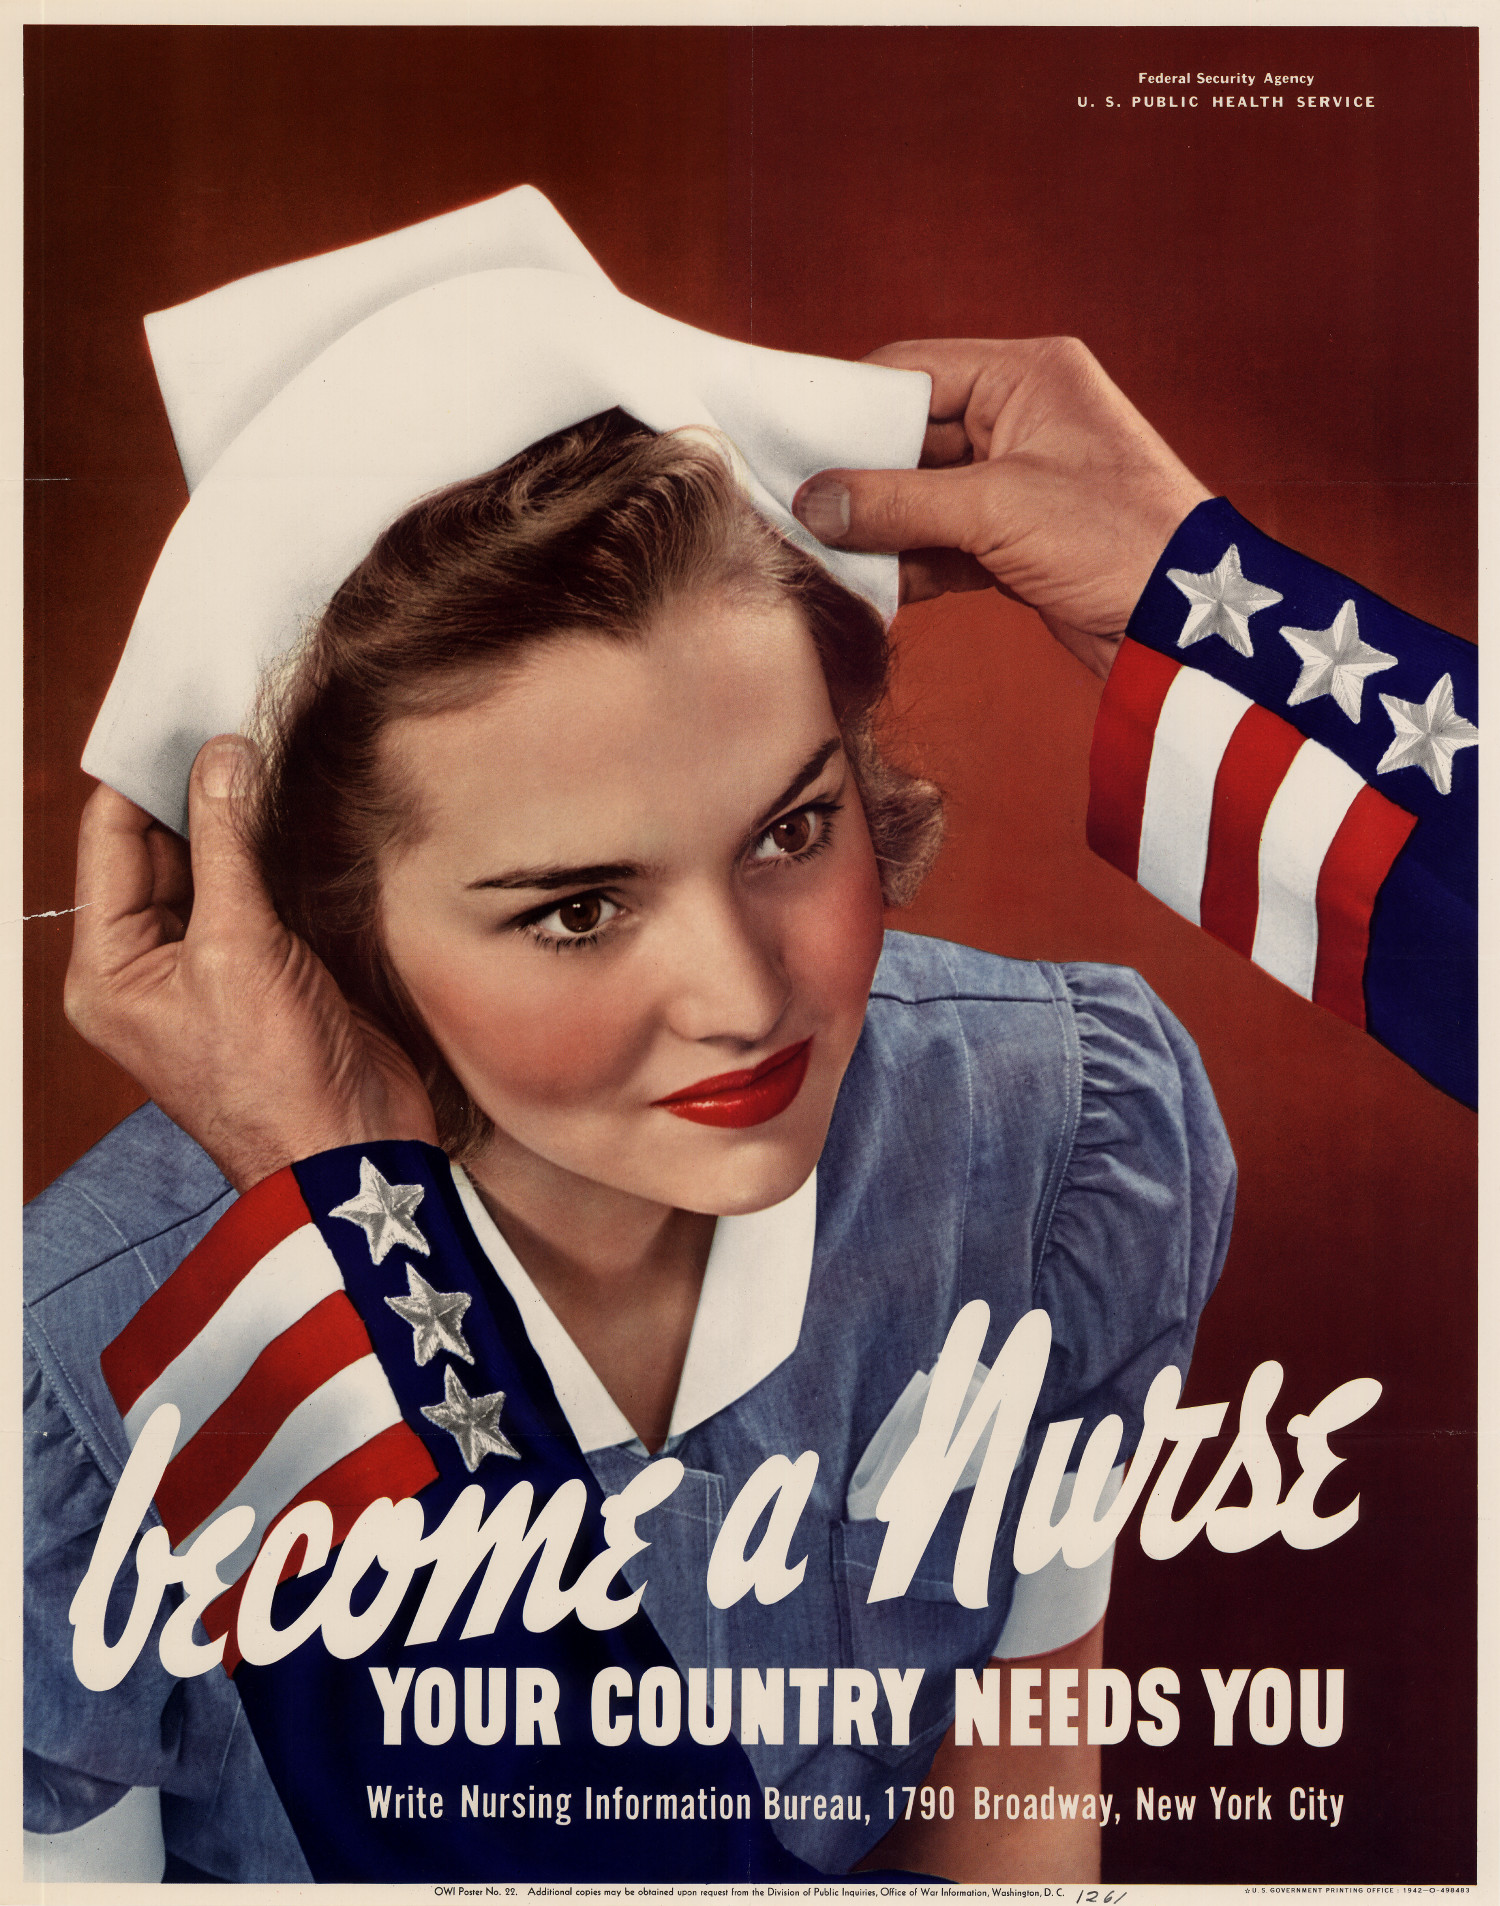 Become A Nurse Your Country Needs You Digital Library